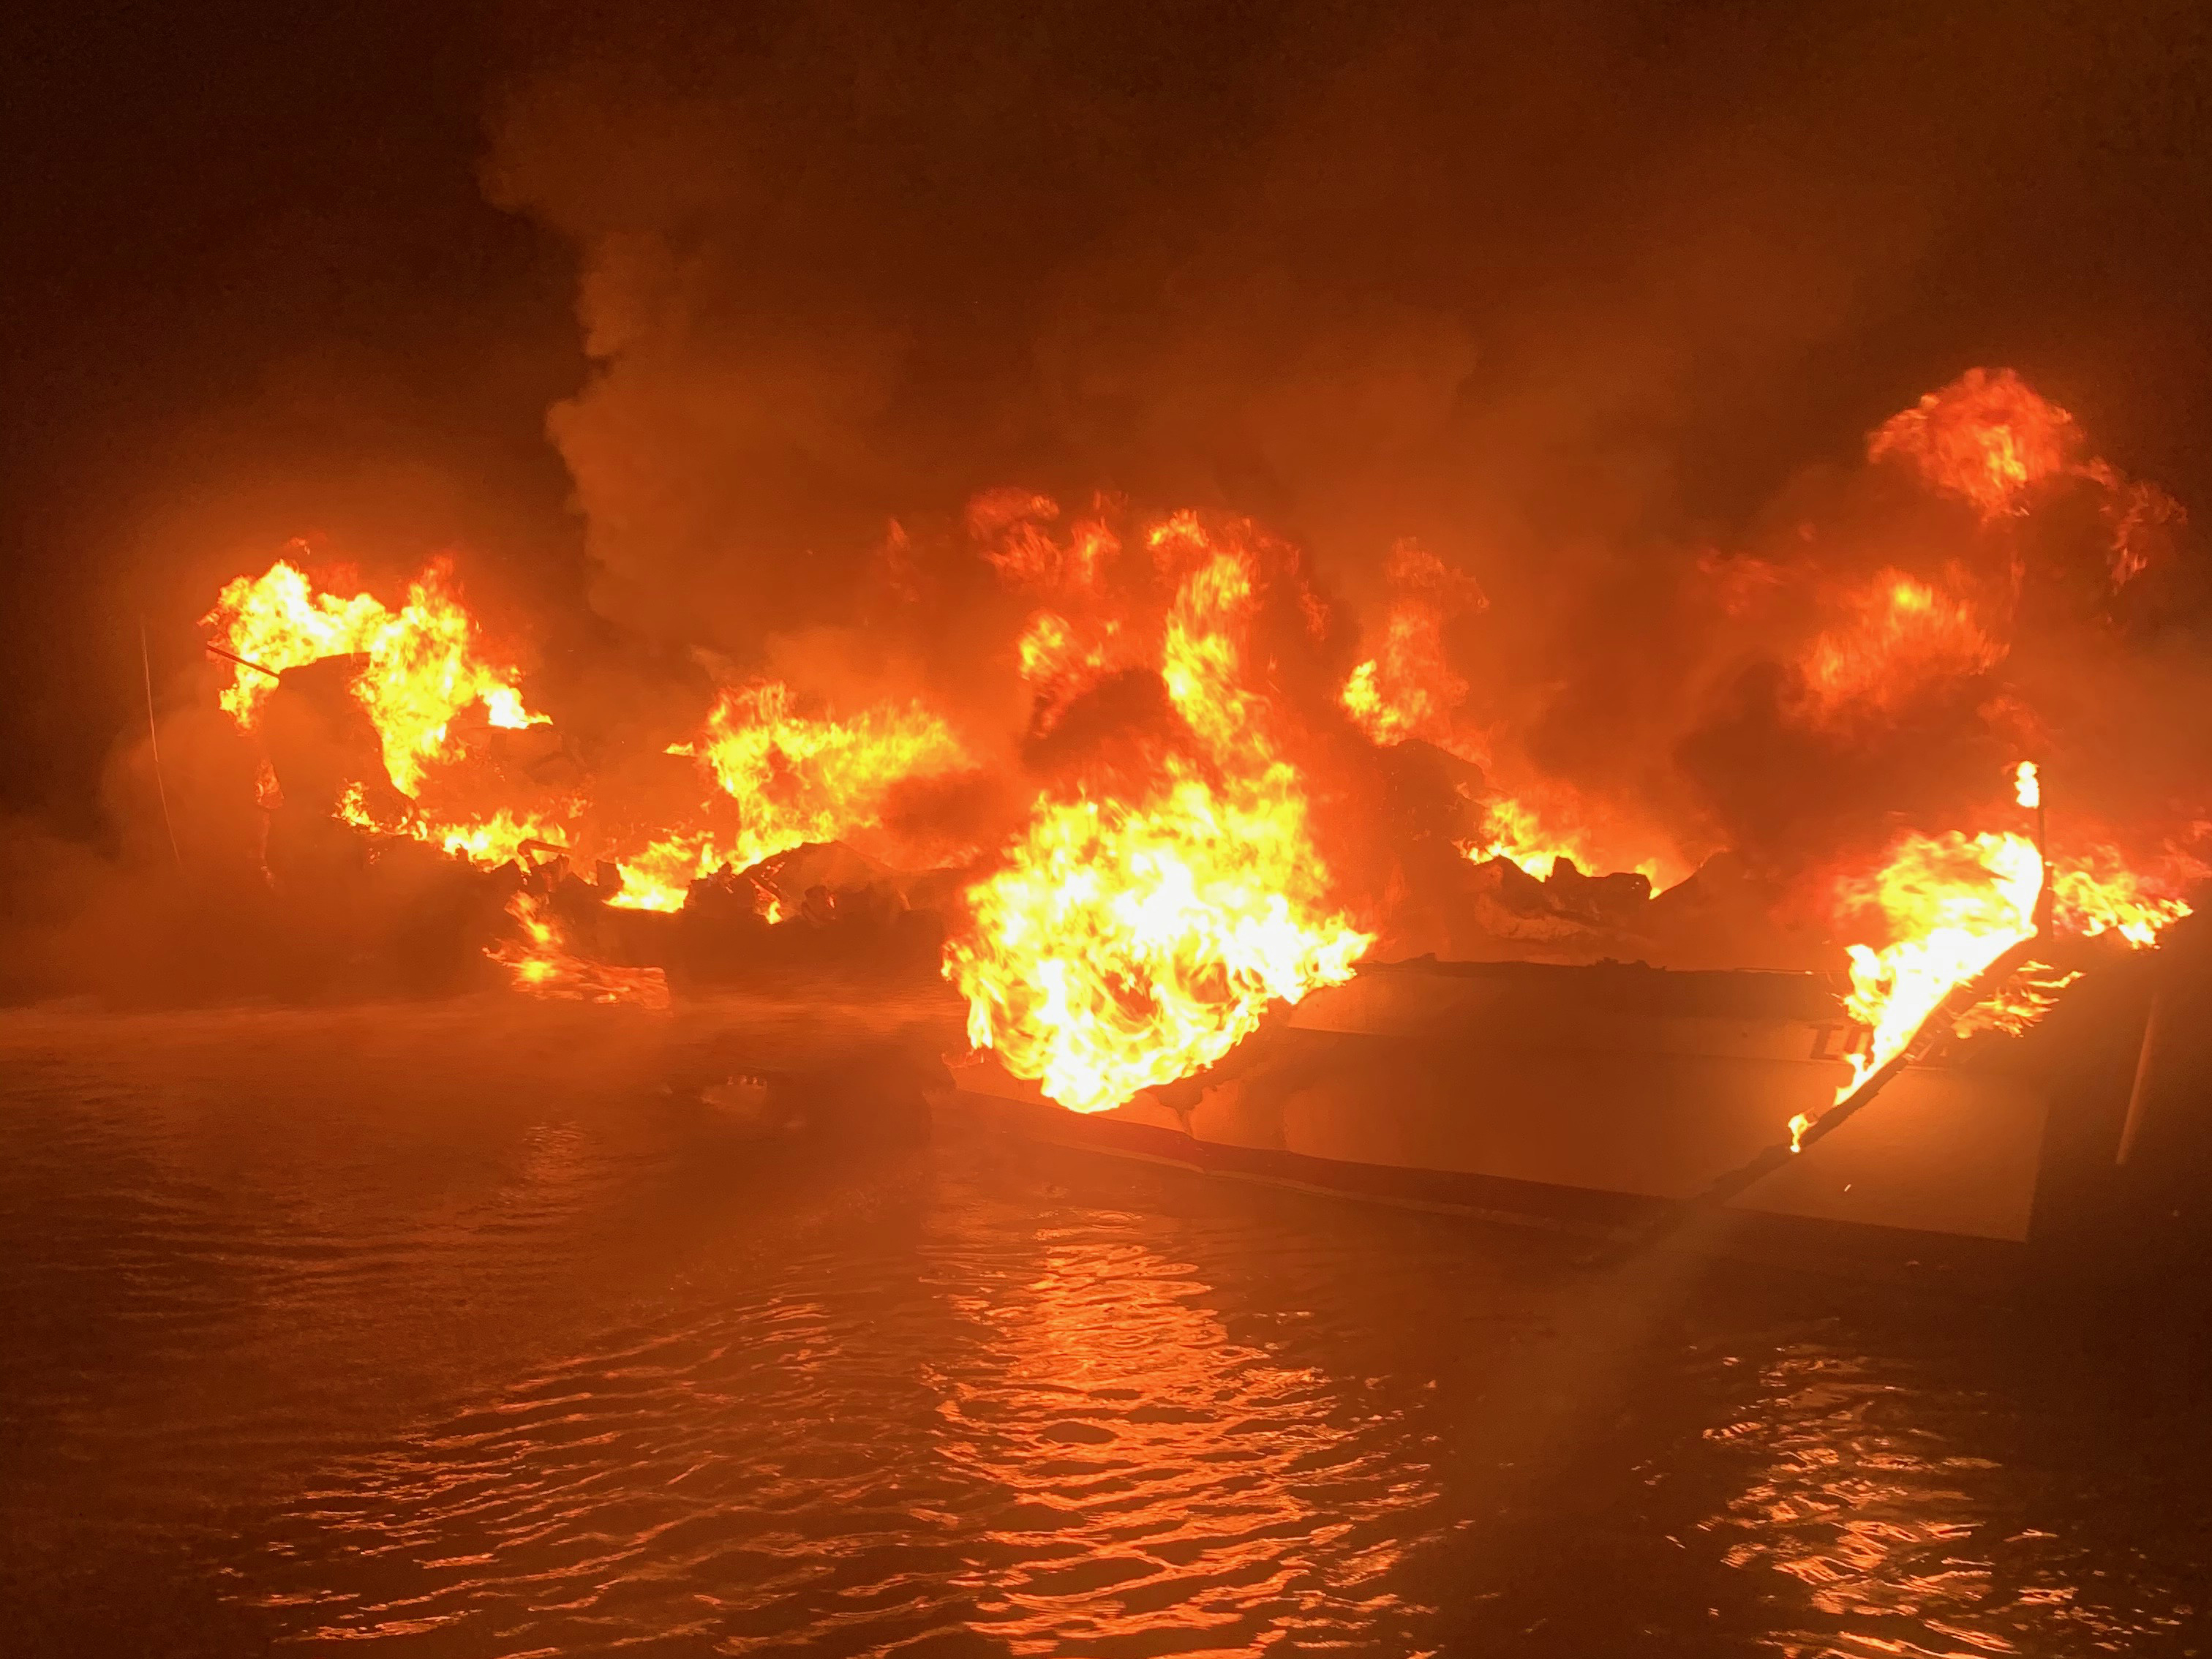 A 29-foot Response Boat-Small crew from Coast Guard Station Dauphin Island helps Dauphin Island Fire Rescue fight a fire on board a fishing boat Wednesday night. (U.S.Coast Guard courtesy photo)